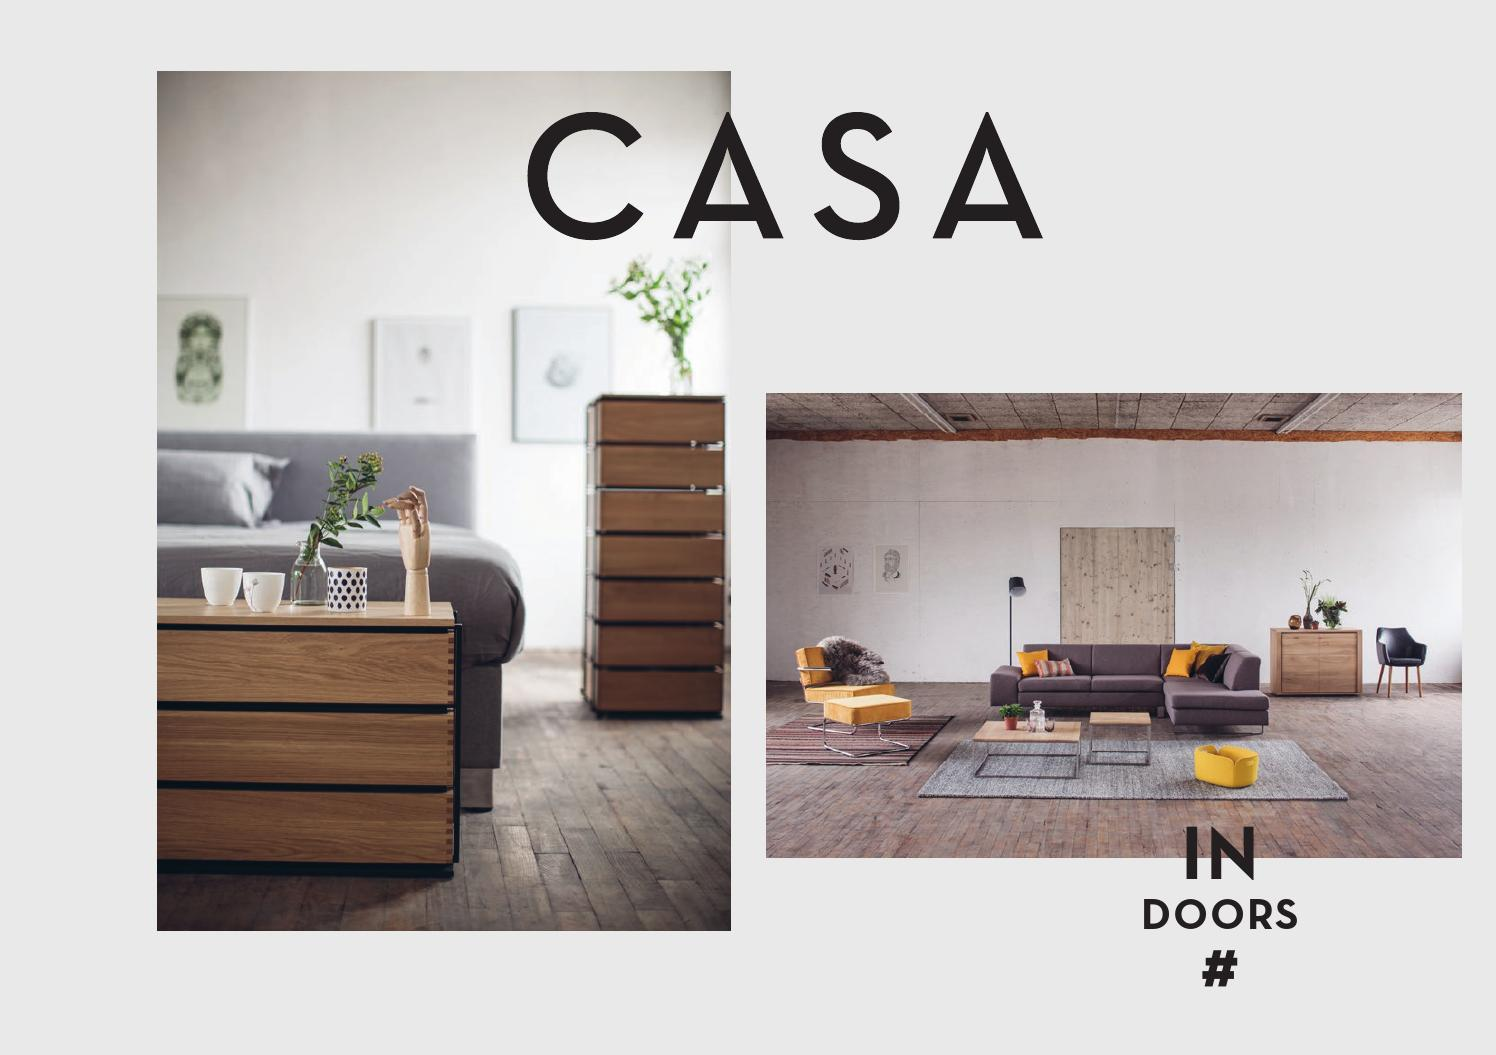 Couchtisch Lazy Casa In Doors By Christian Feurstein Issuu